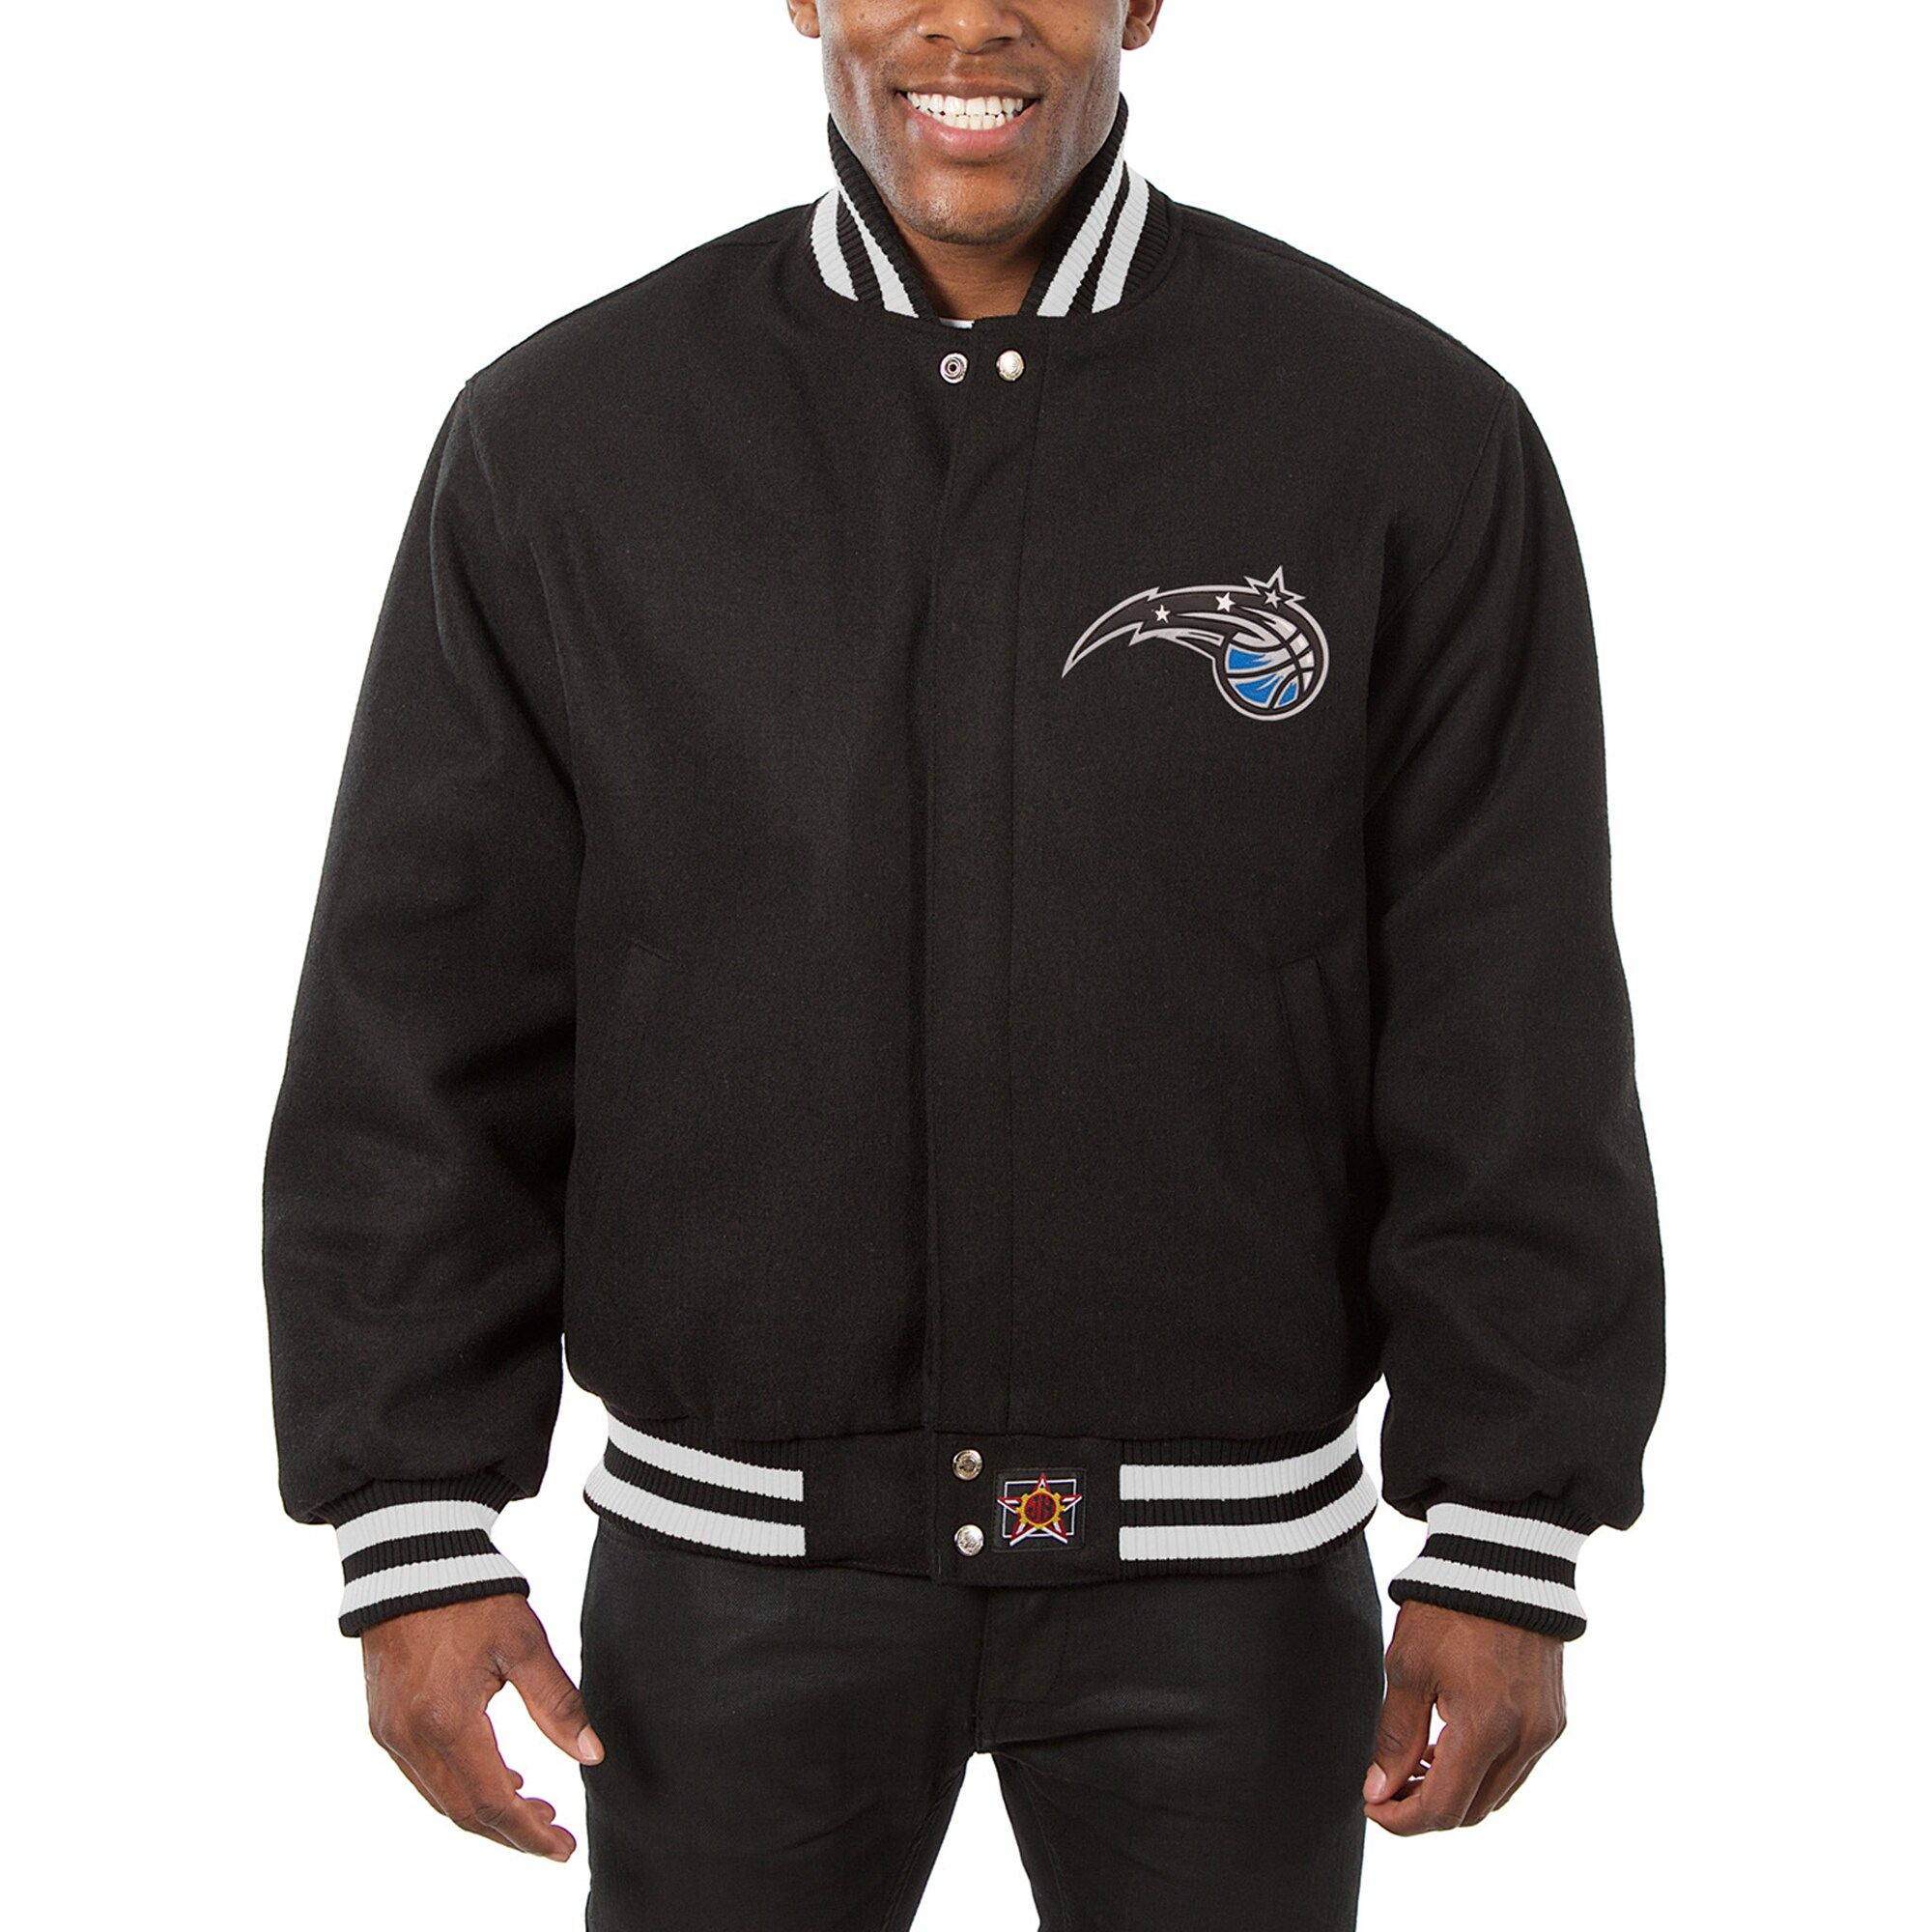 Orlando Magic JH Design Big & Tall All Wool Jacket with Leather Logo - Black